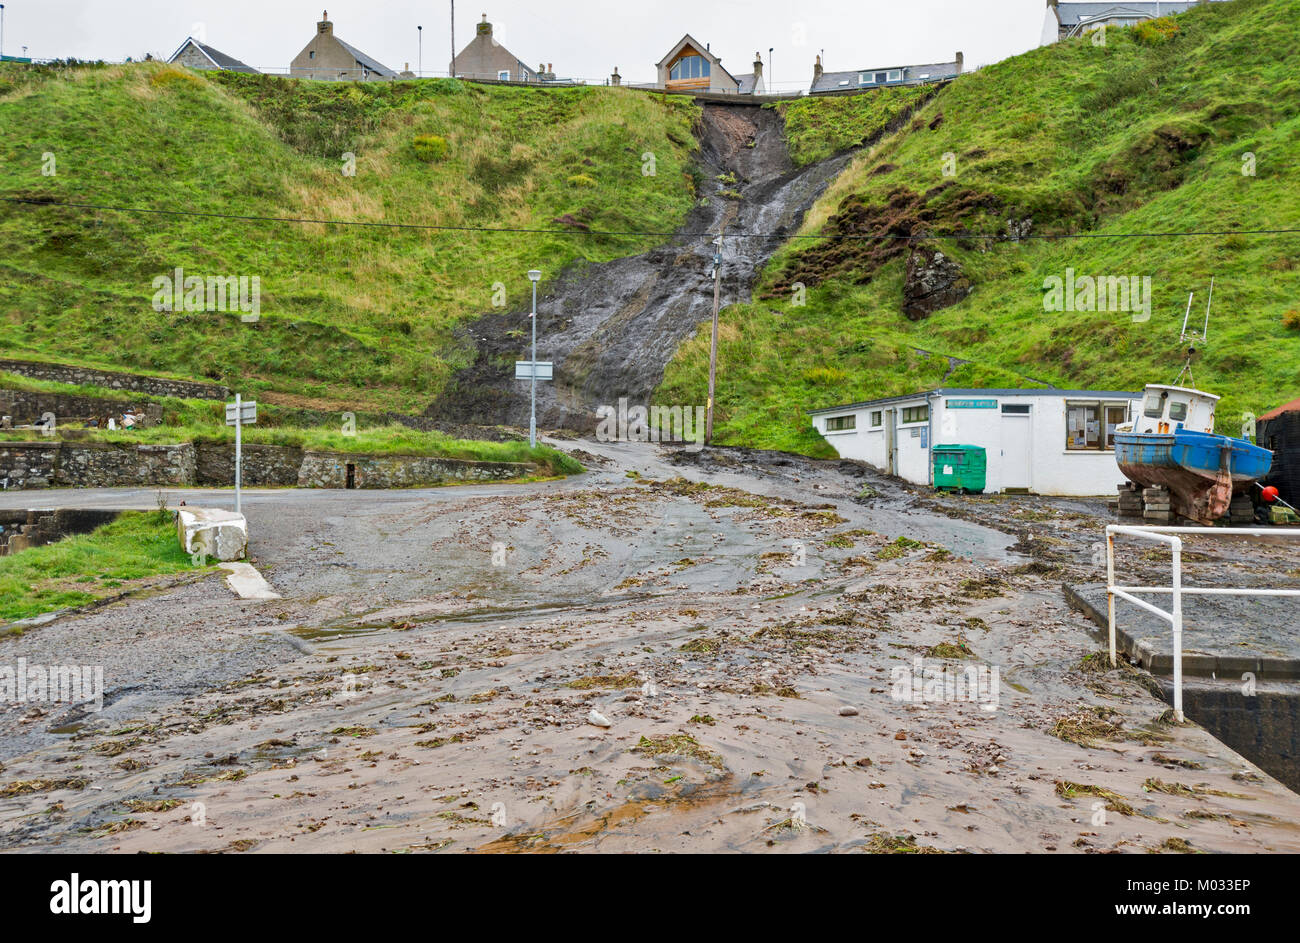 PORTKNOCKIE MORAY SCOTLAND LANDSLIPS FROM CLIFFS INTO THE HARBOUR AREA DUE TO SEVERE RAINFALL SEPTEMBER 2017 NO.9 - Stock Image